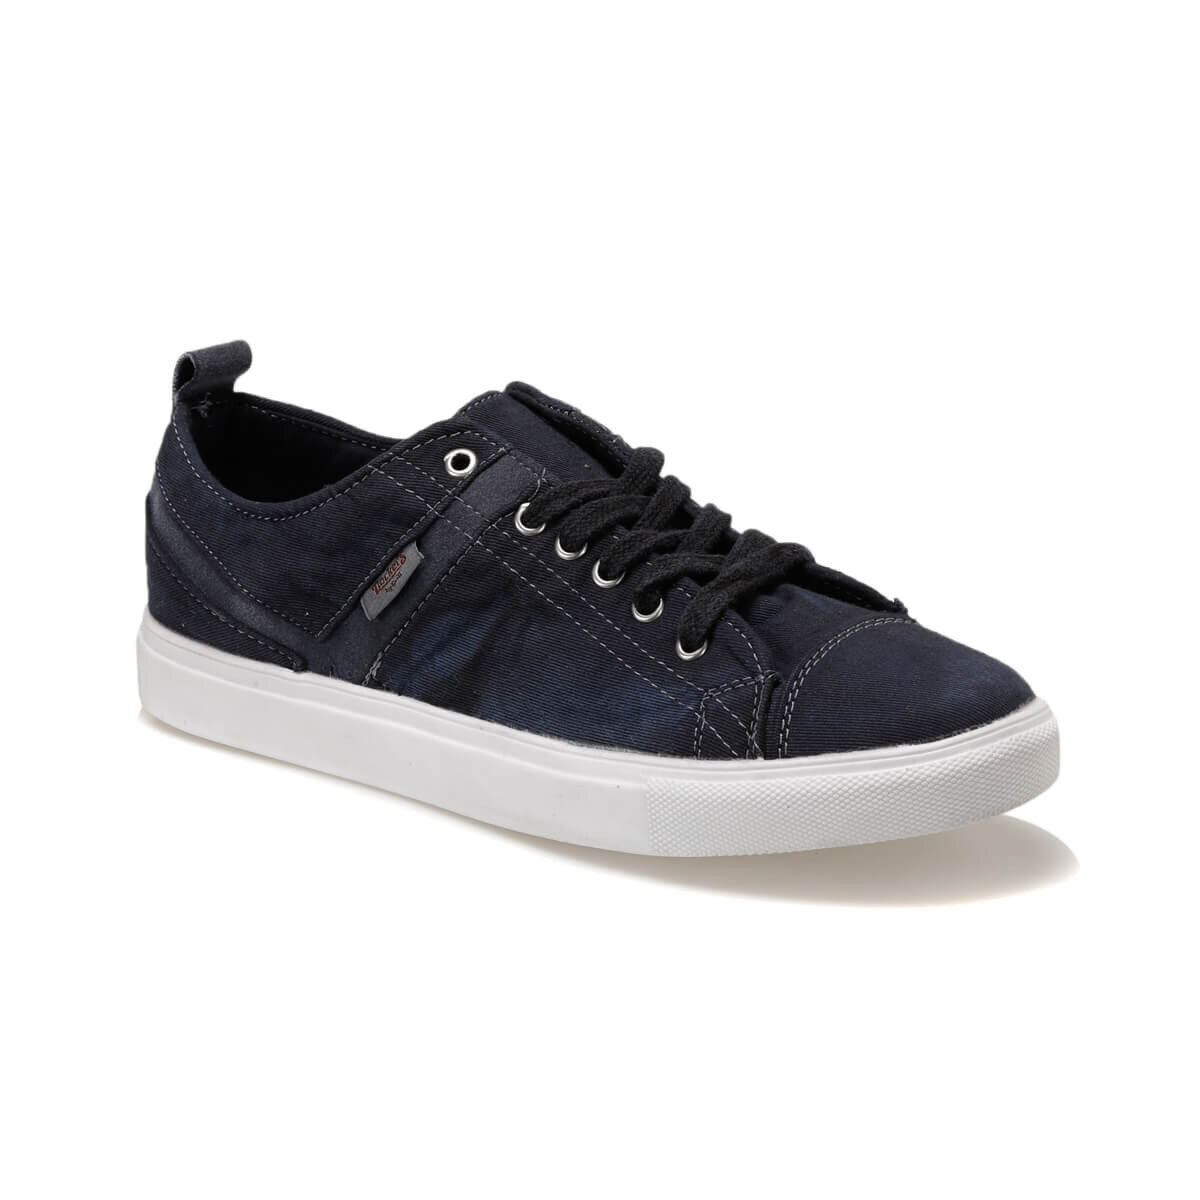 FLO 224920 Dark Navy Blue Men 'S Sneaker Shoes By Dockers The Gerle